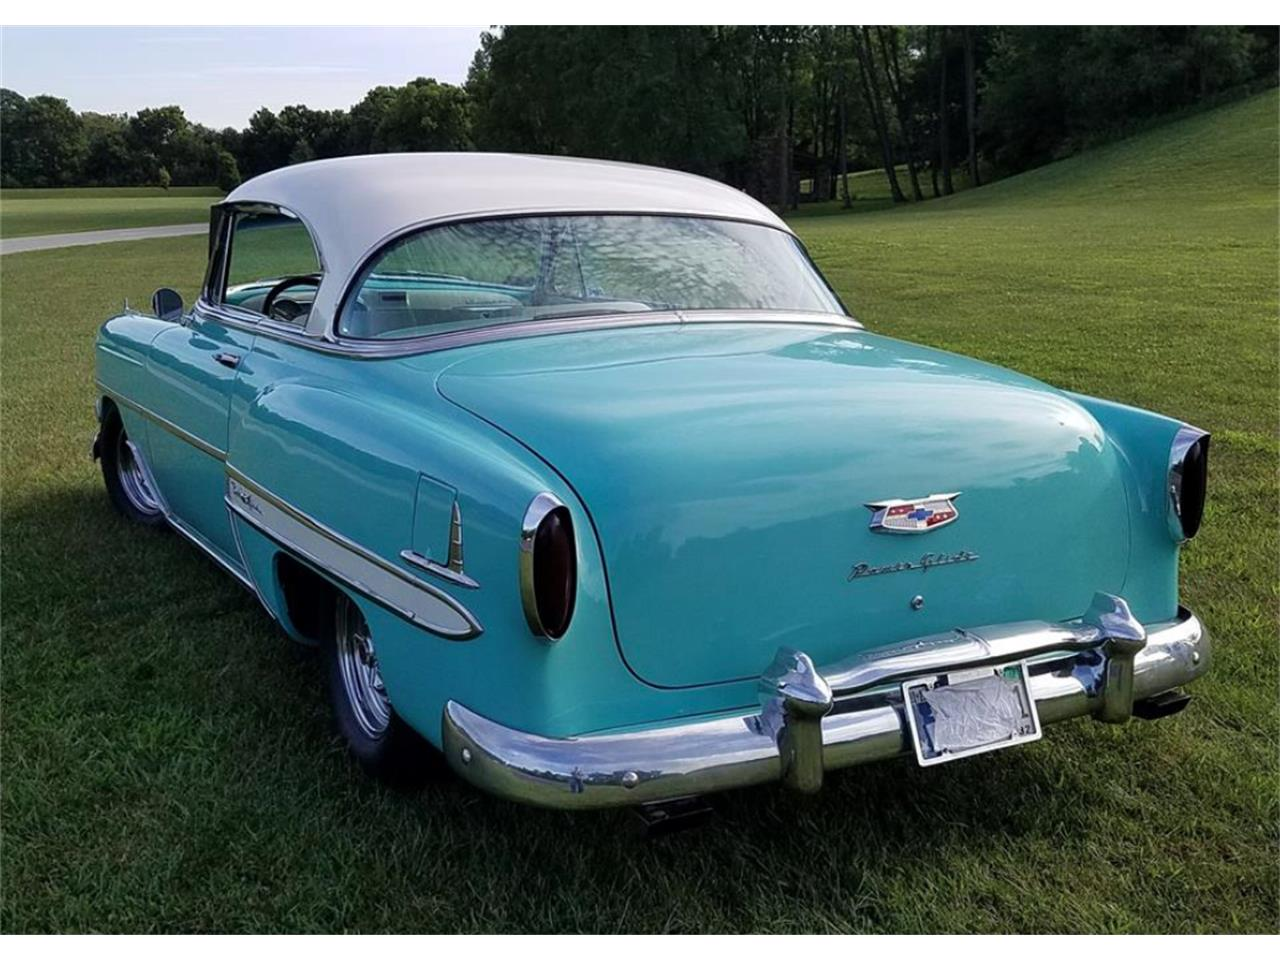 Large Picture of '54 Chevrolet Bel Air located in PLAINFIELD Indiana - $35,000.00 Offered by a Private Seller - QVHL